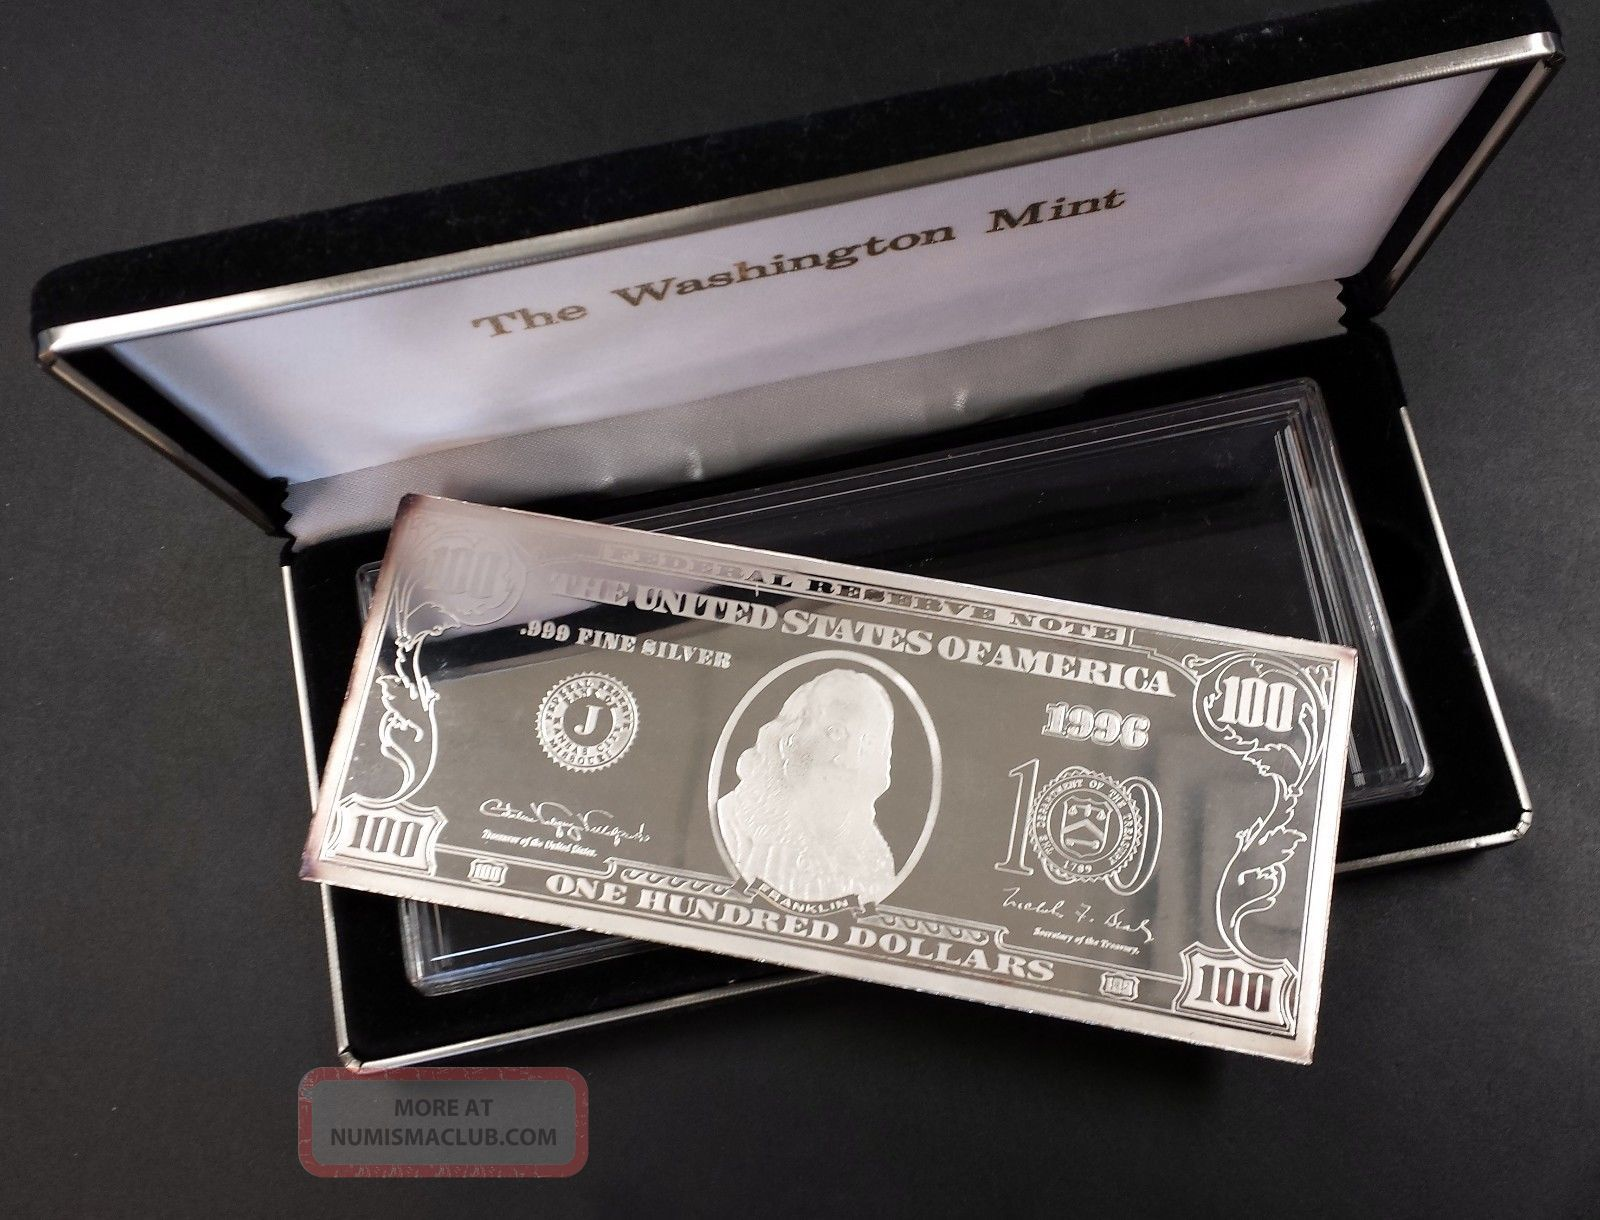 Washington 4 Troy Oz Silver Bar 1996 One Hundred Dollar